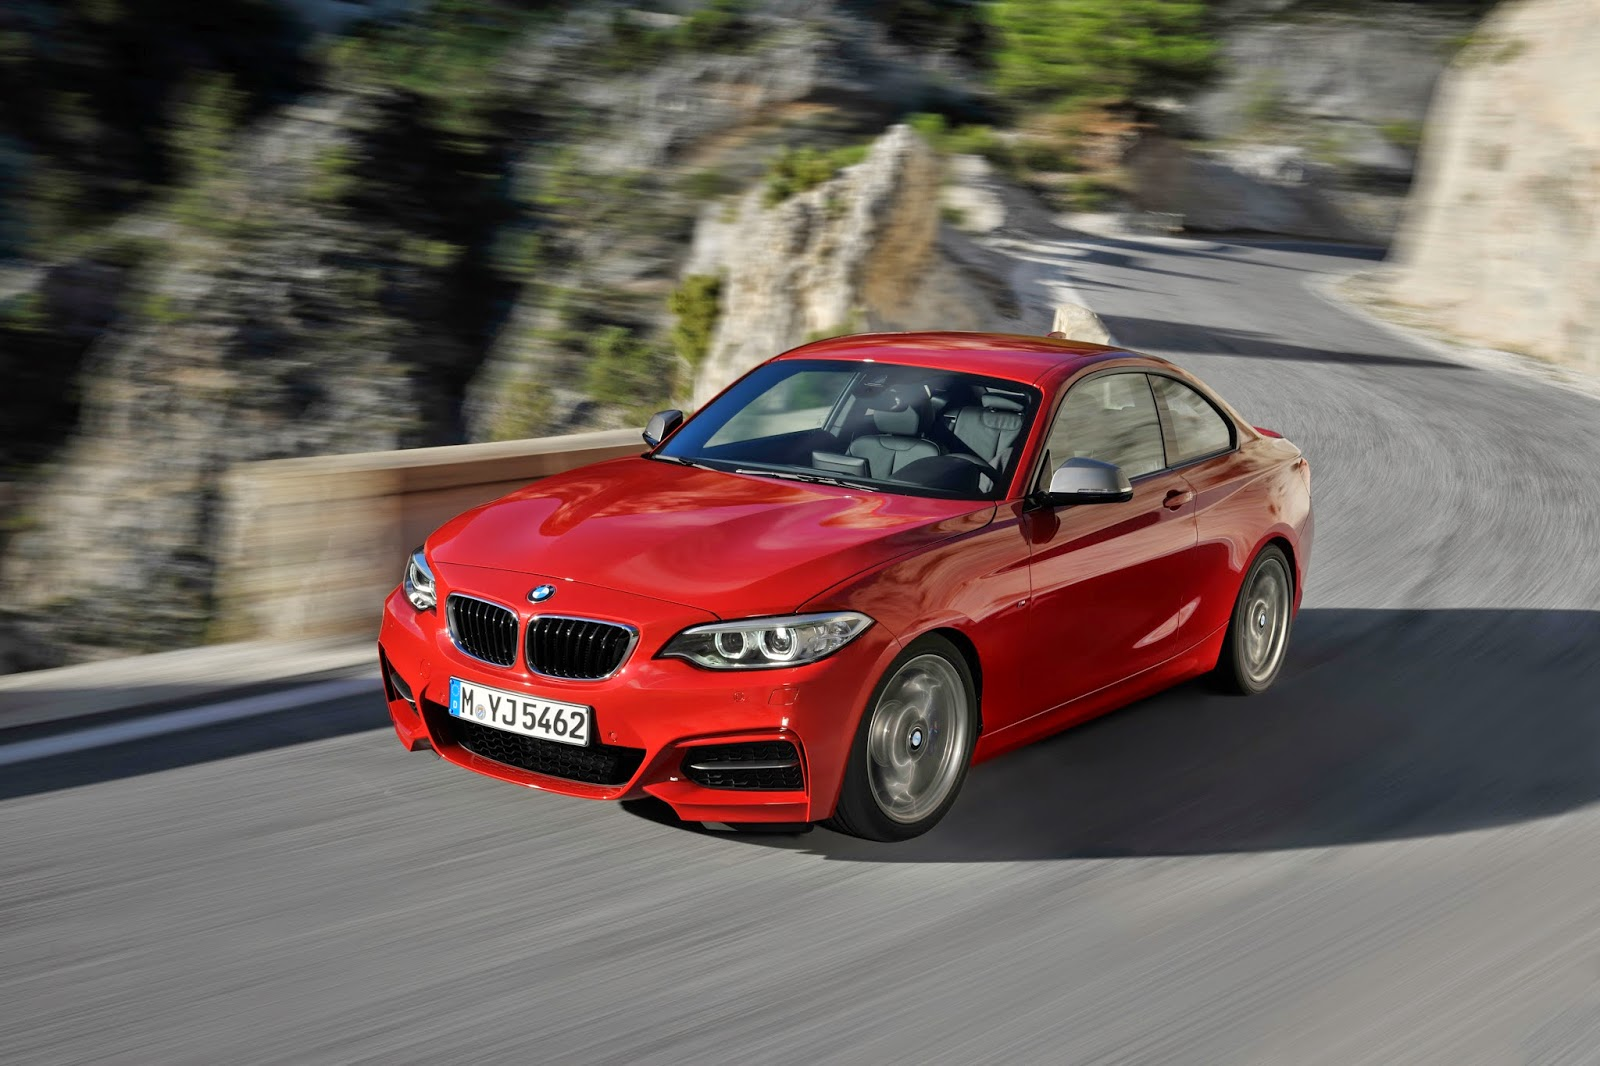 Bmw S Ultimate Driving Experience Offering Dynamic Behind The Wheel Driving Programs With Over